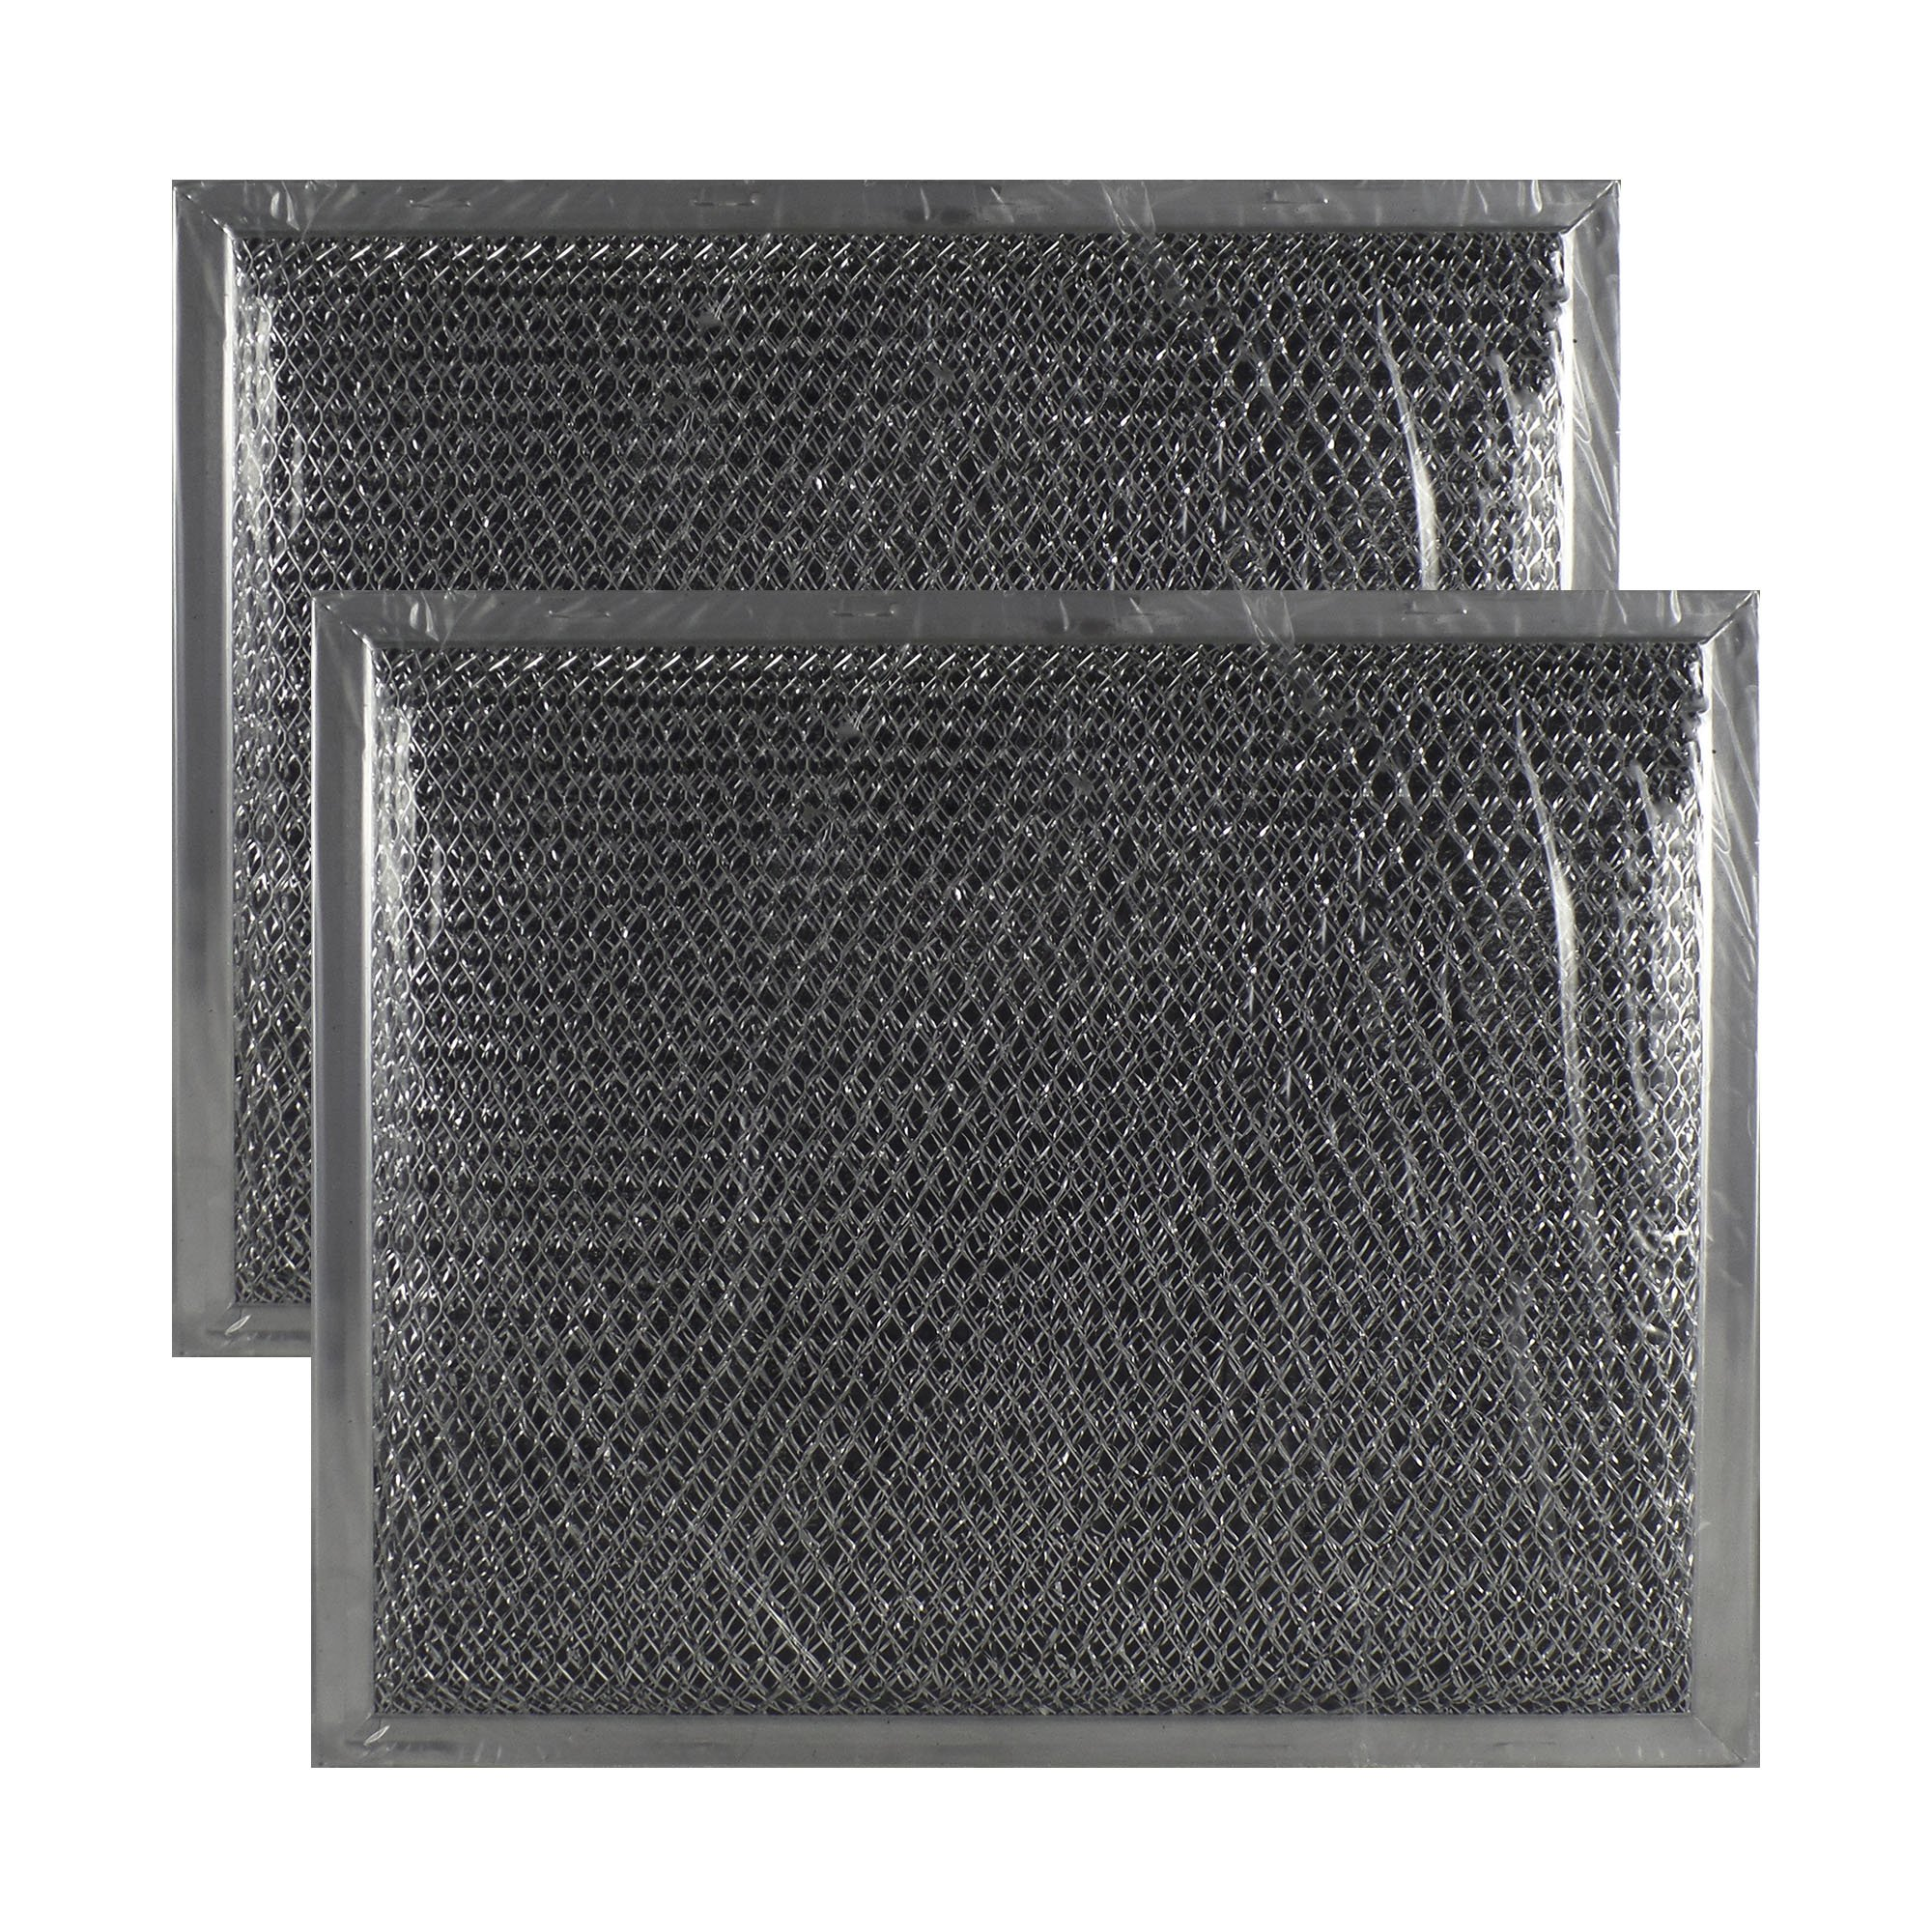 2 PACK Air Filter Factory Compatible Replacement For GE WB2X8253, WB02X10700, WB02X8253, WB2X8406 Aluminum Mesh Combo Charcoal Filter